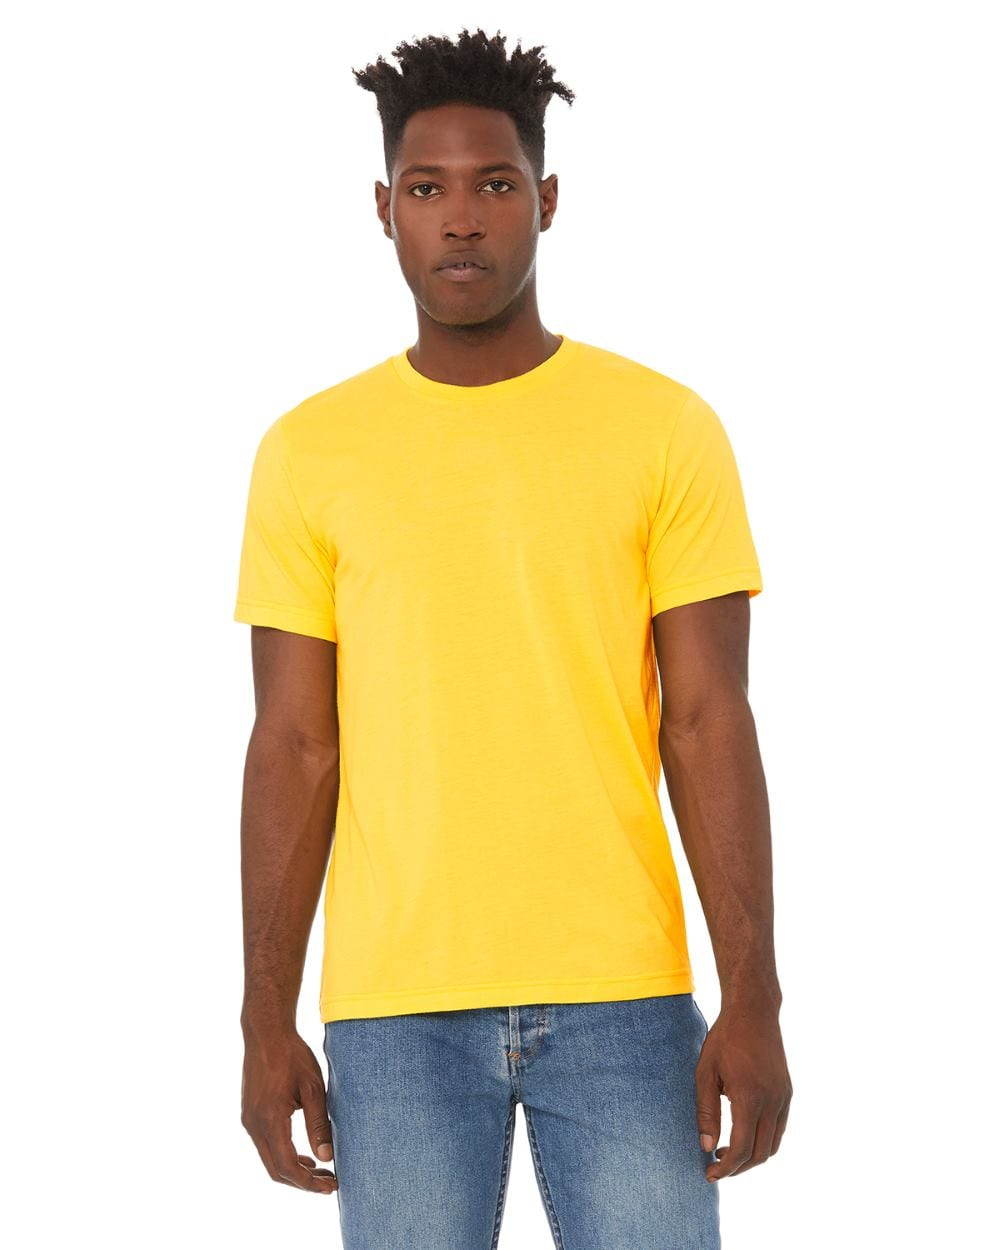 fe8684e8 bulk custom shirts bella canvas 3001cvc custom unisex jersey shirt heather  yellow